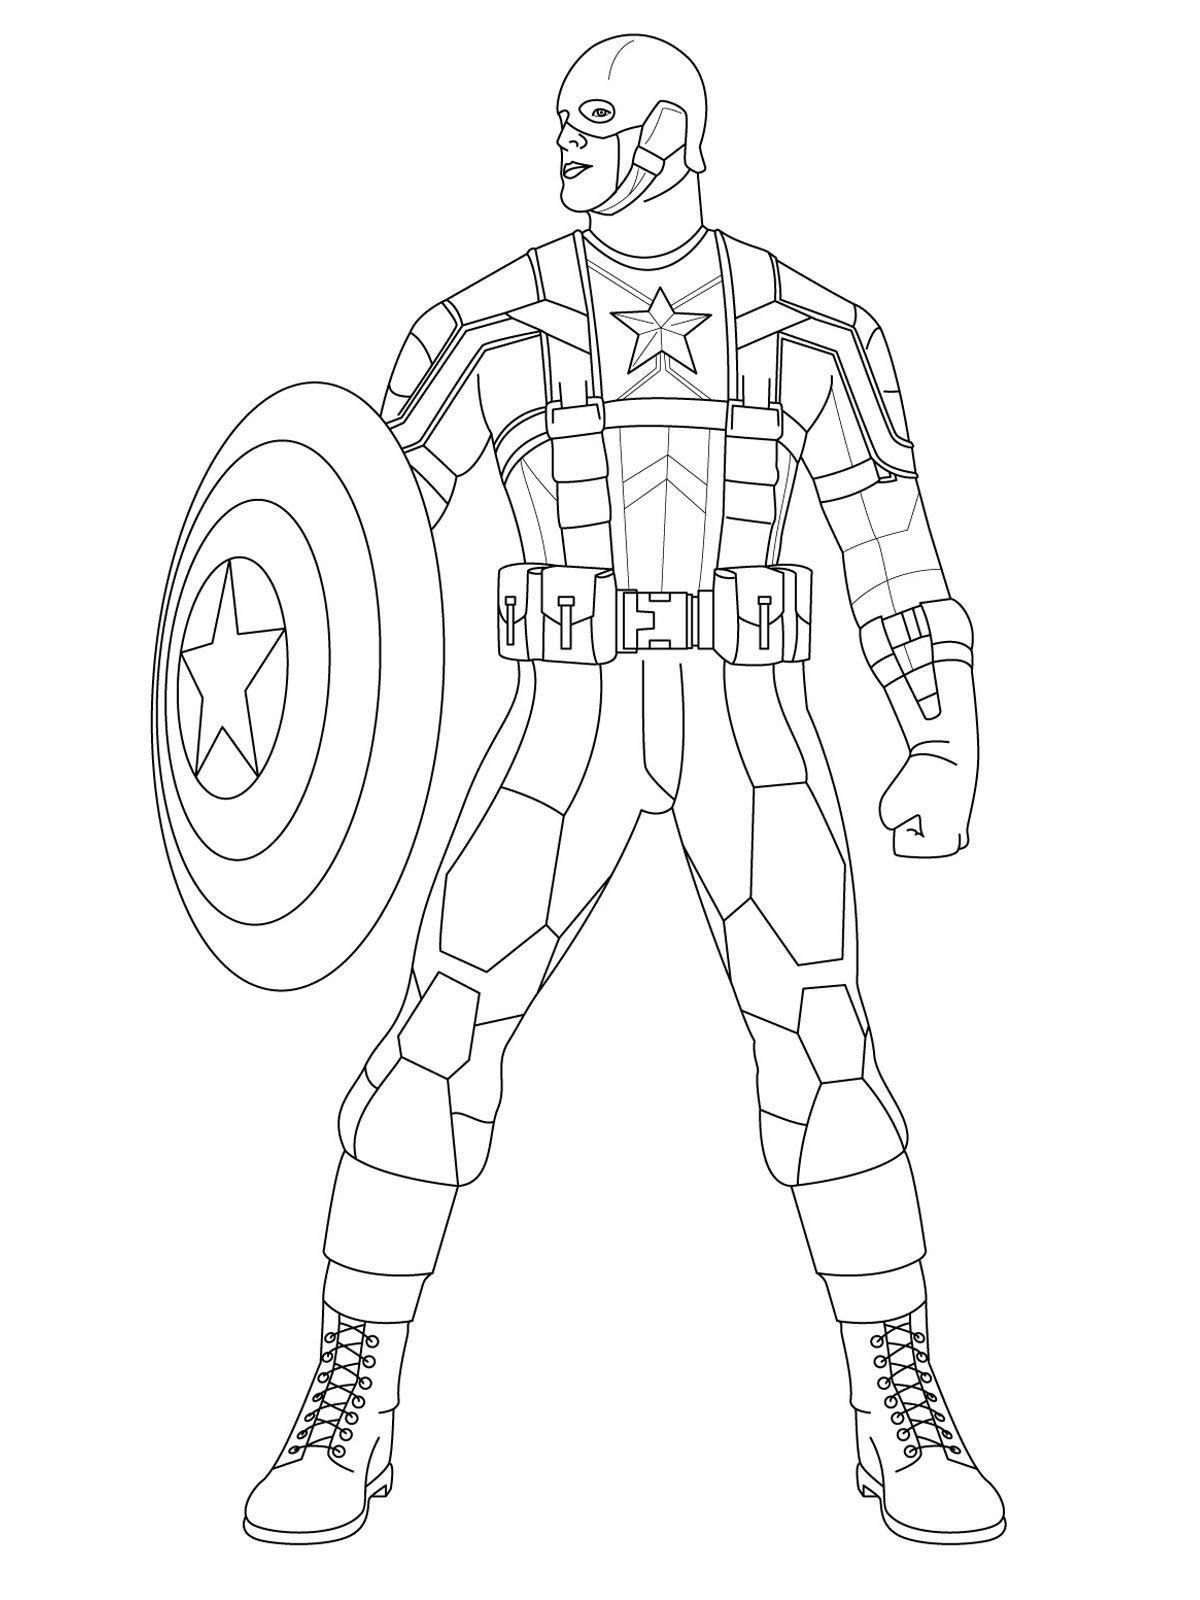 Drawing Conclusions Worksheets 2nd Grade Most Popular Captain Marvel Drawing Eas In 2020 Captain America Coloring Pages Toy Story Coloring Pages Mermaid Coloring Pages